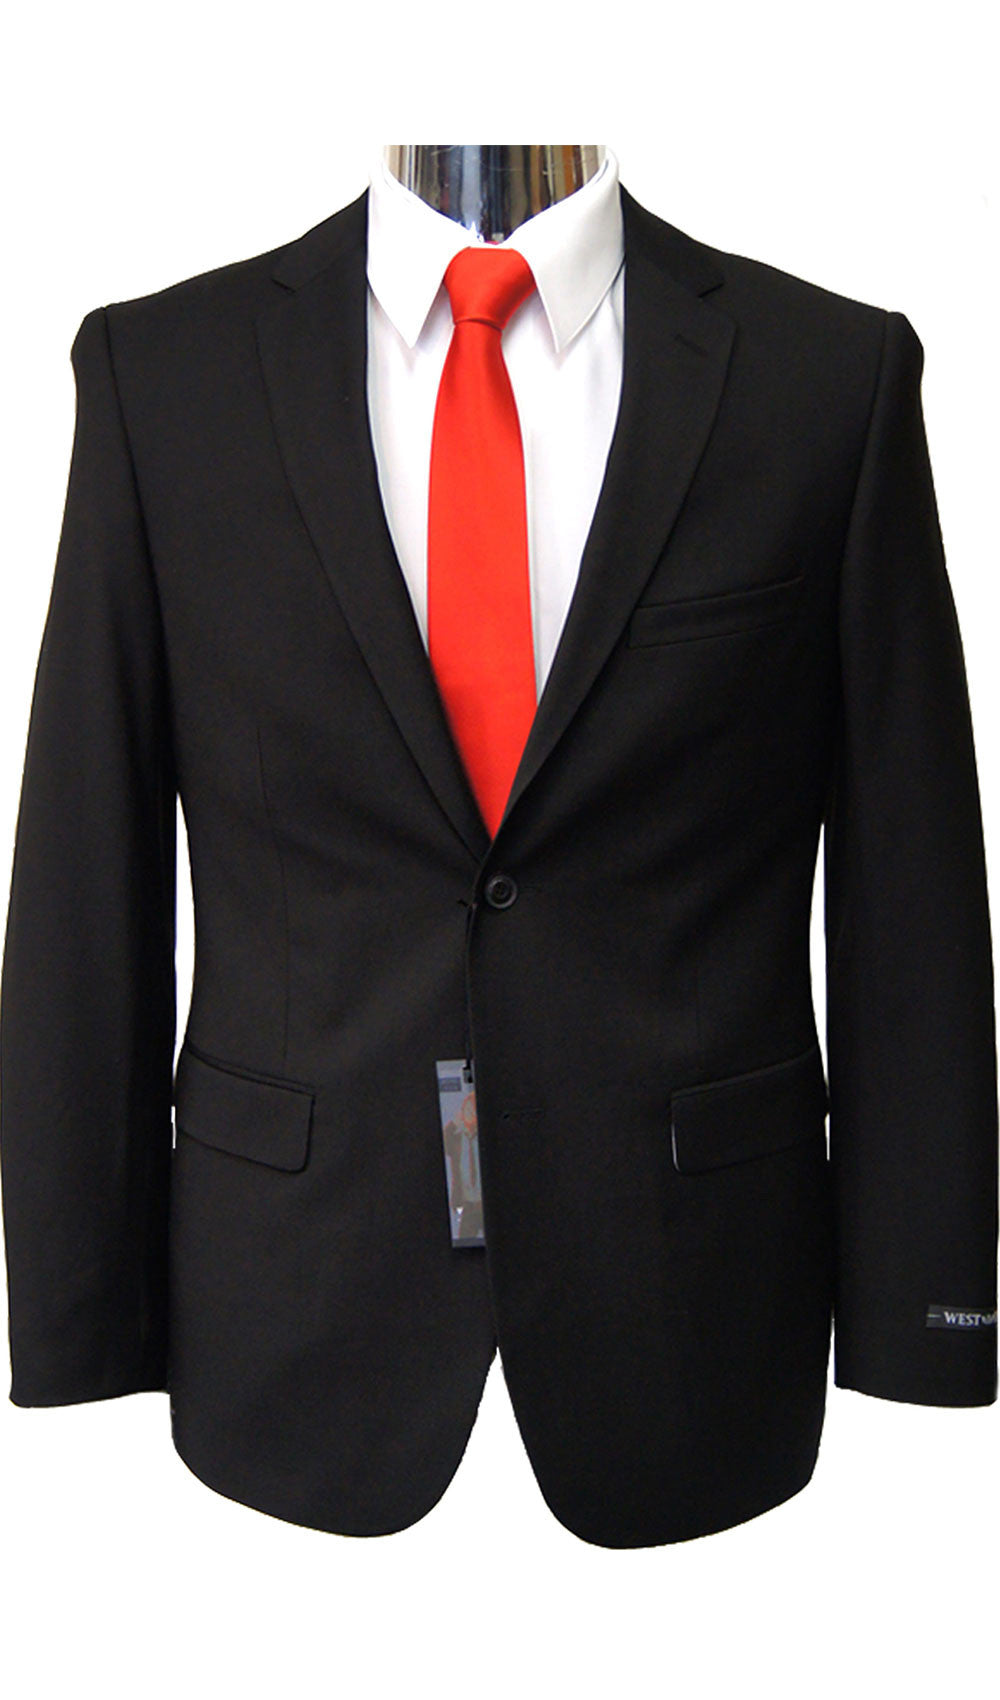 Copy of Caravelli - STYLE BLACK SLIM FIT SUIT Caravelli- Schaffer